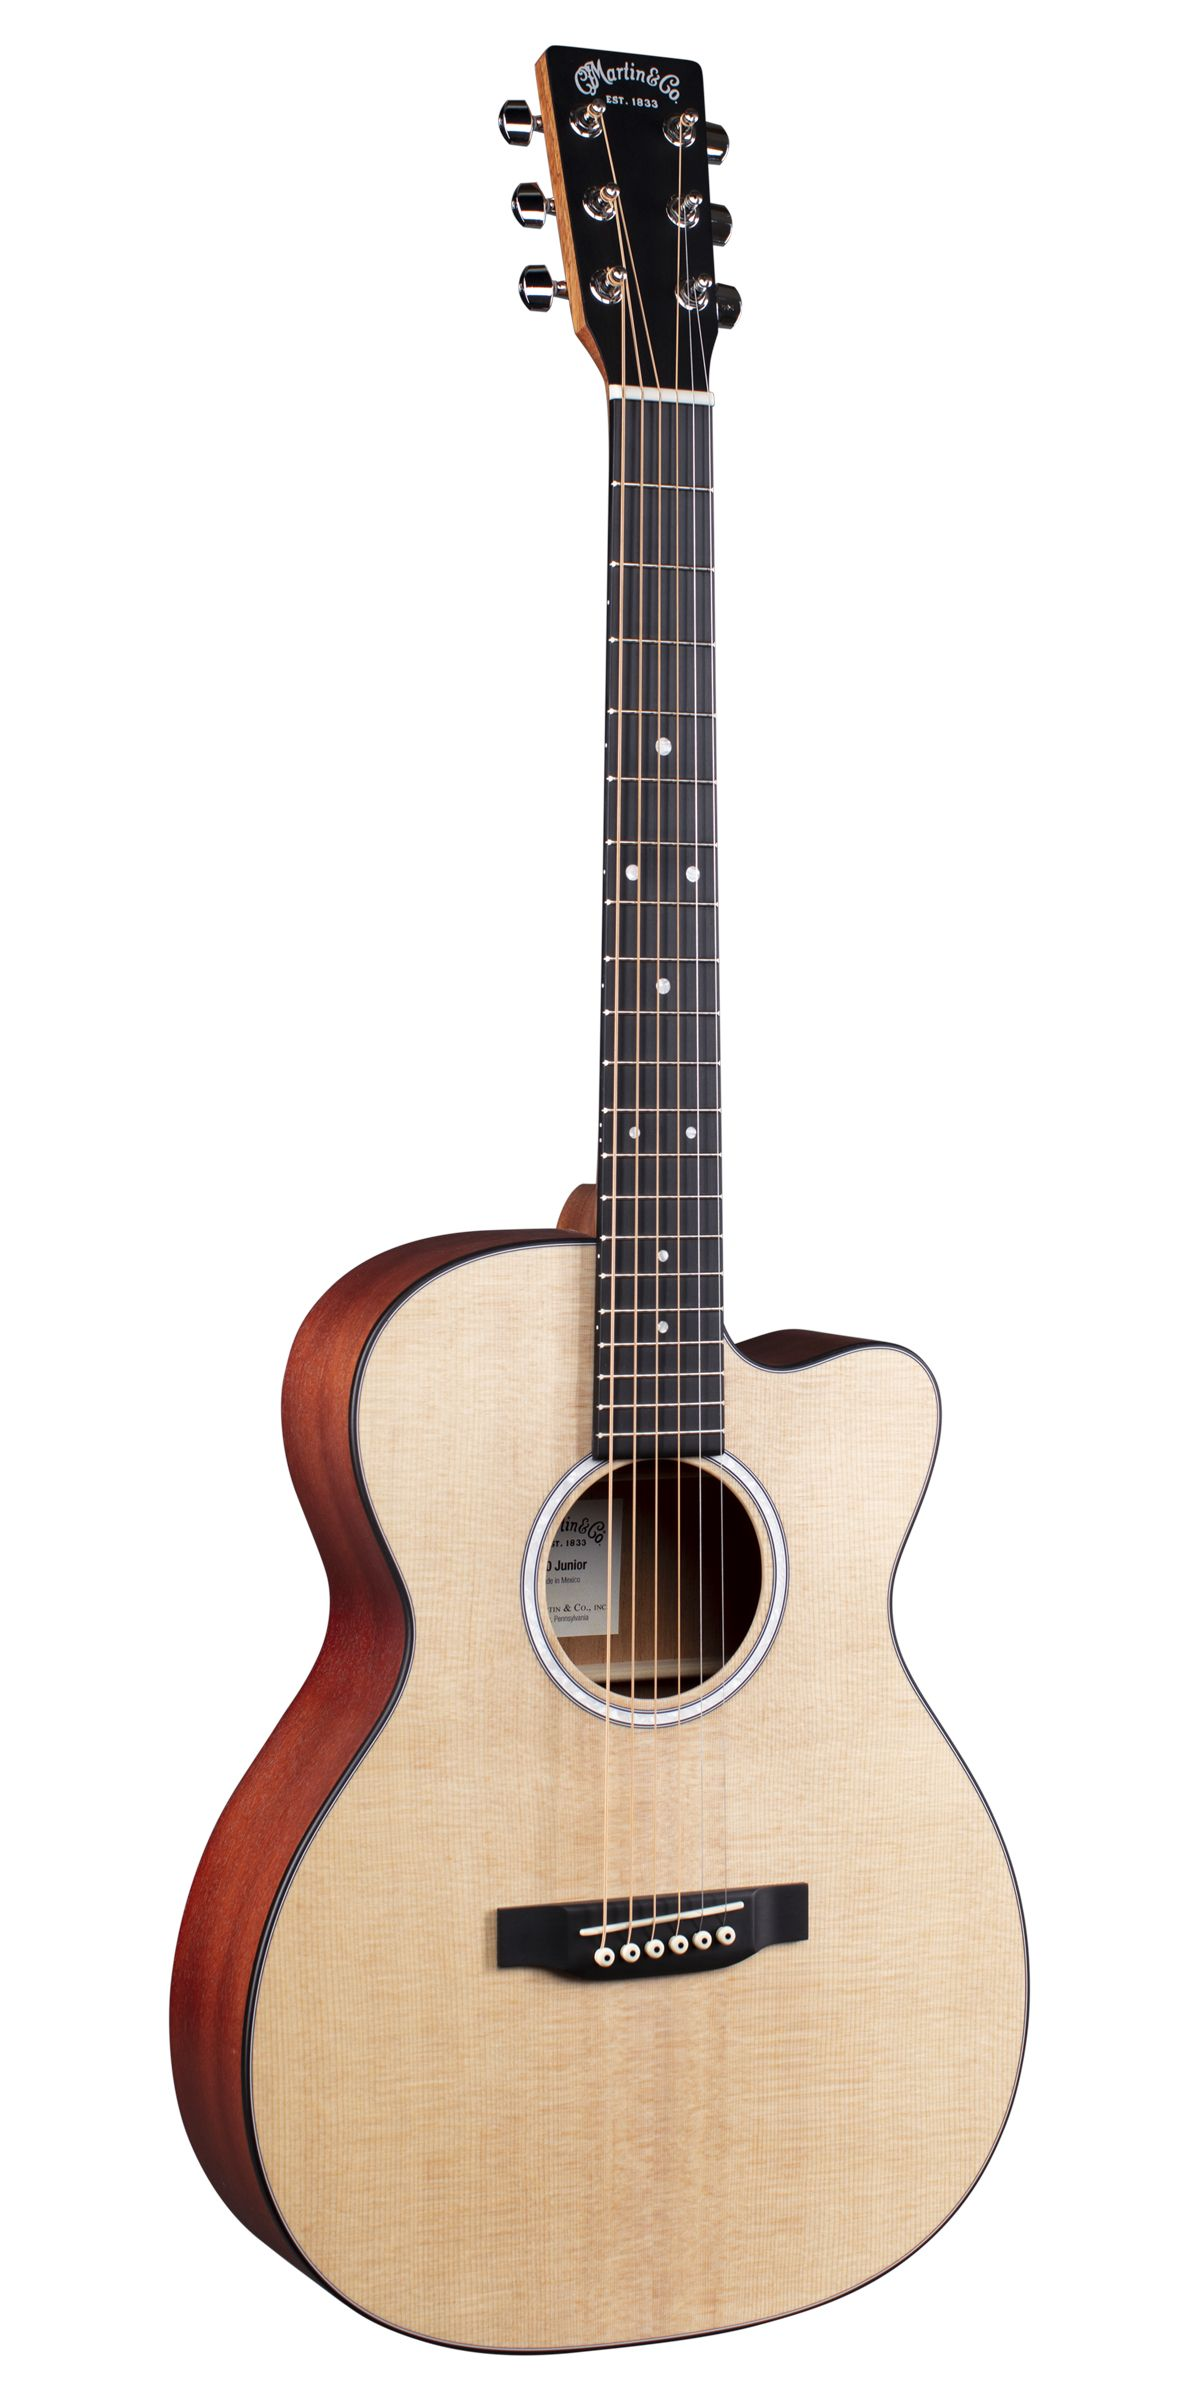 Product Review Martin 000cjr 10e Acoustic Electric Guitar Guitar Girl Magazine Martin Guitar Acoustic Electric Guitar Acoustic Electric